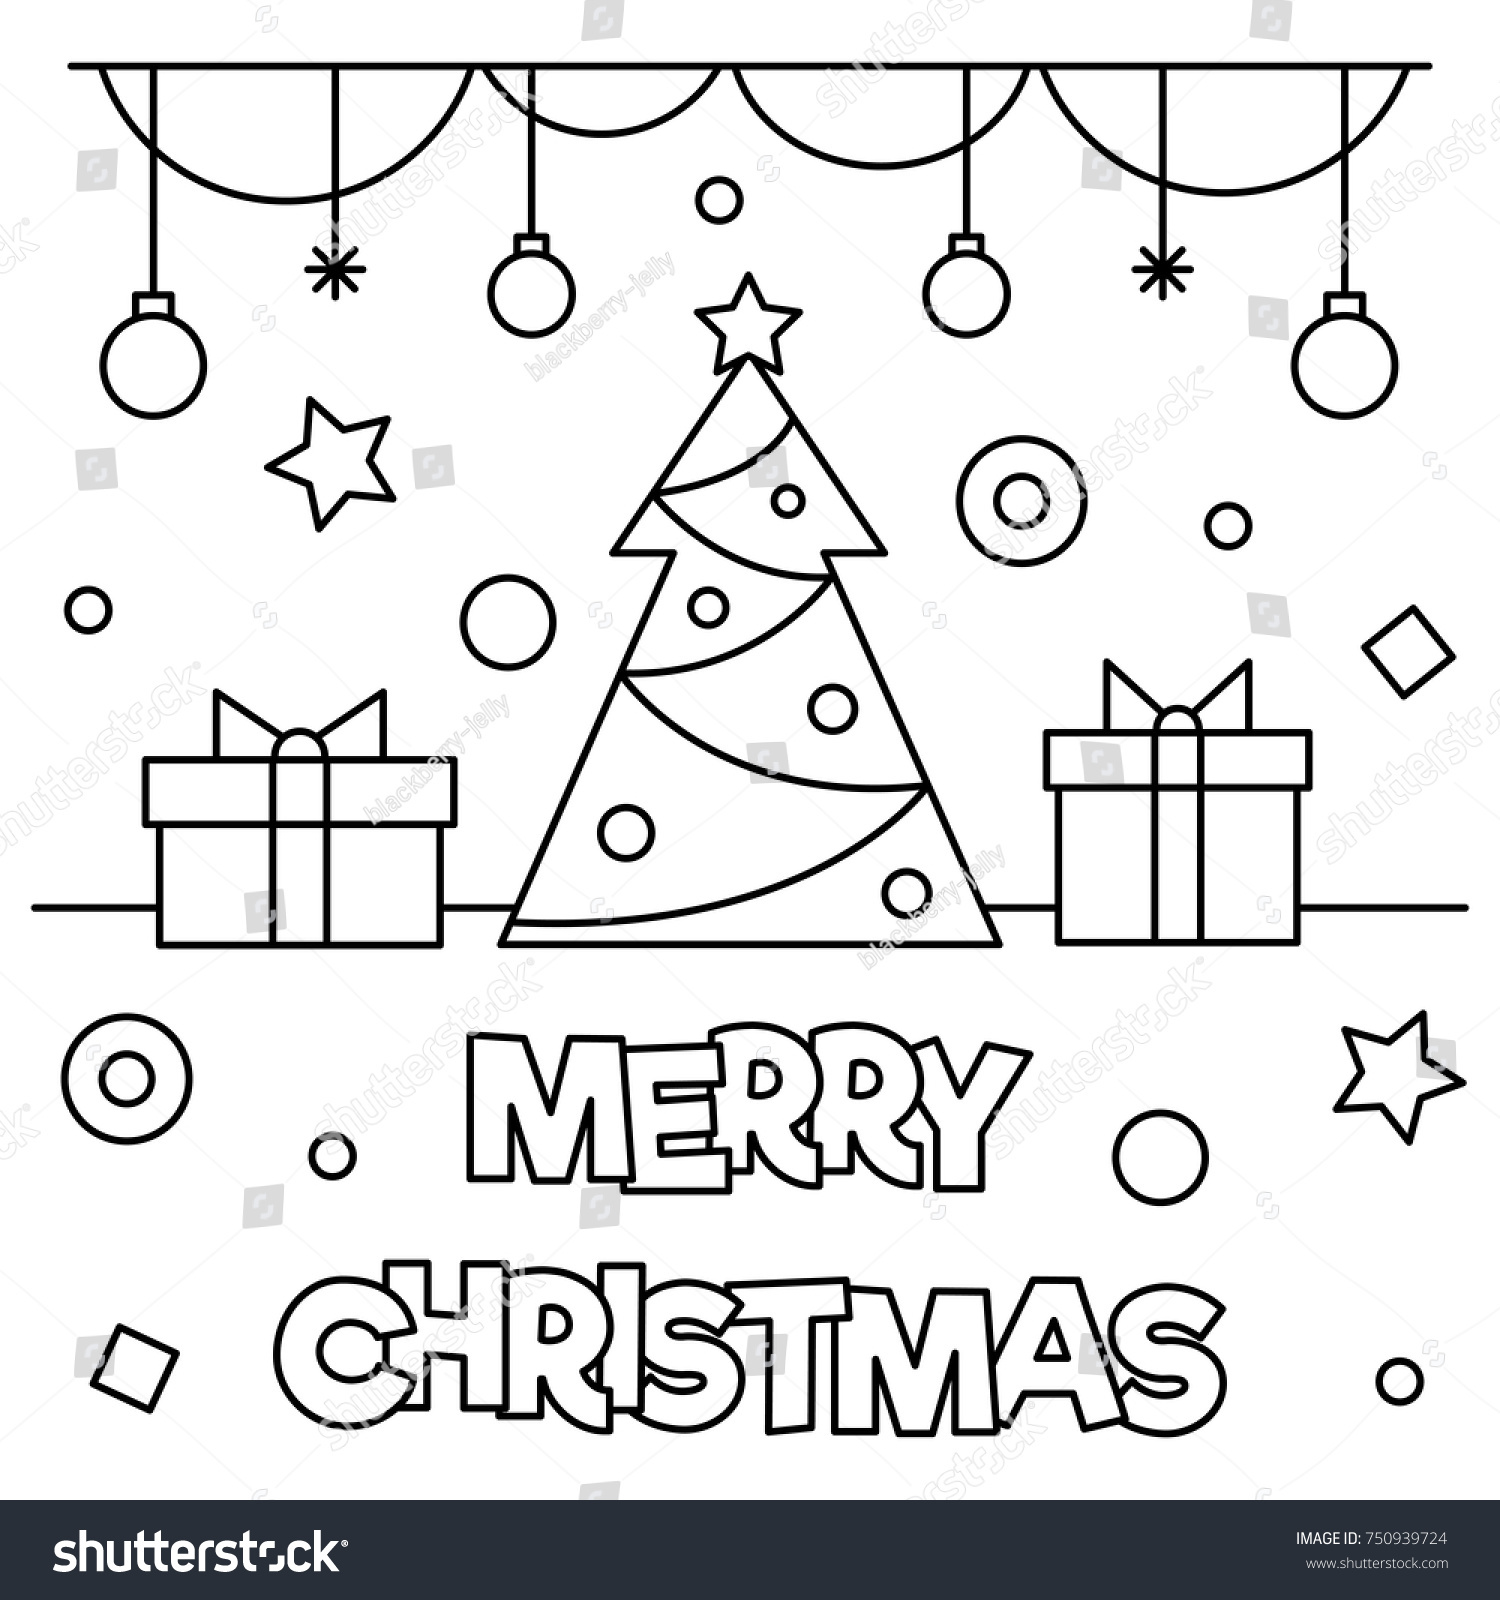 Coloring Pages For Merry Christmas With Page Black White Stock Vector Royalty Free